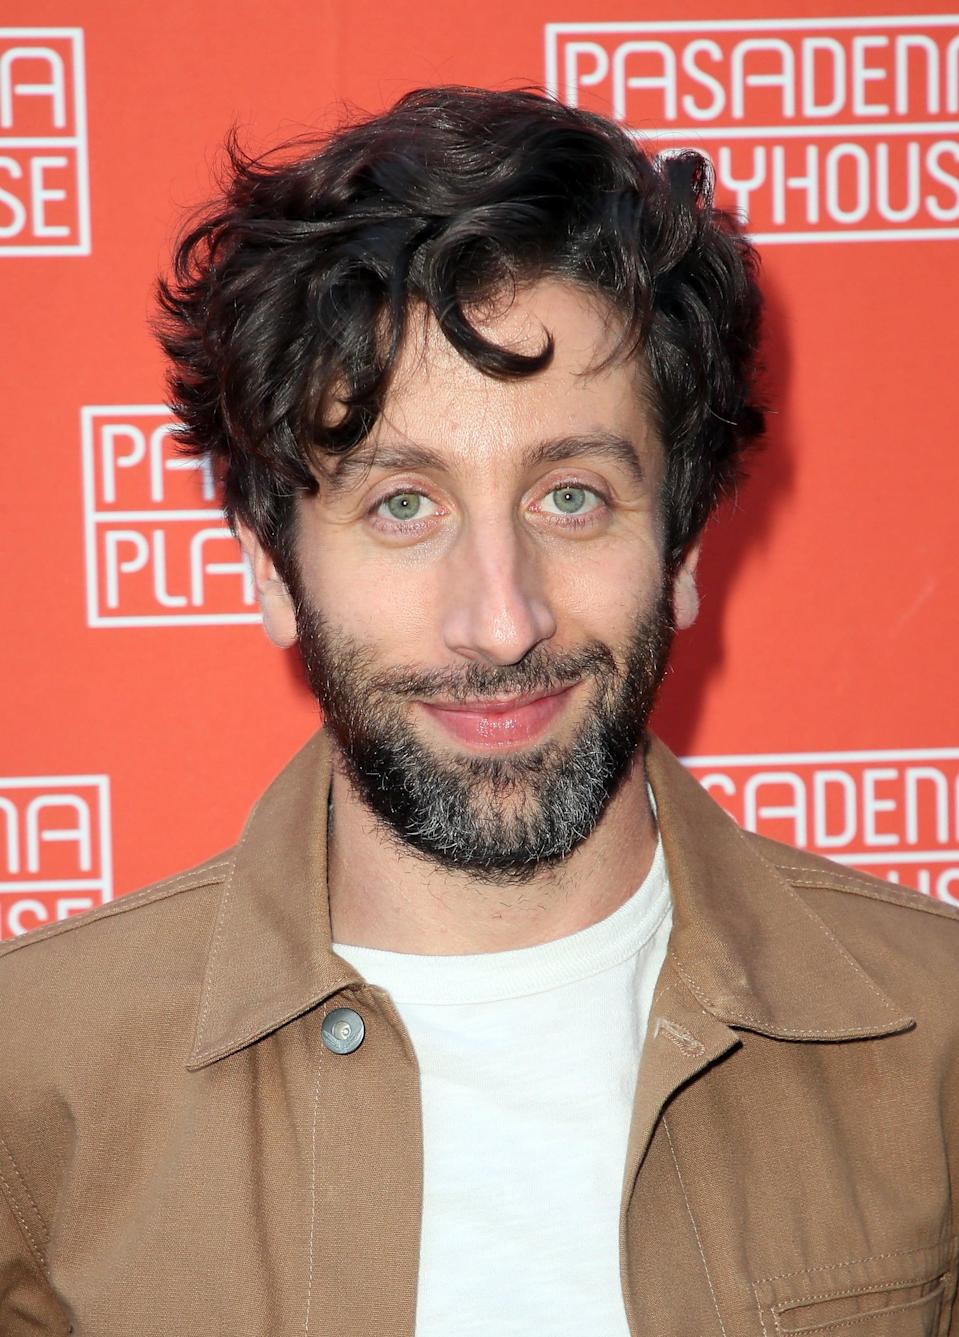 """<p>Simon Helberg, who portrays the hilarious aerospace engineer Howard Wolowitz, hasn't made many plans for himself following the end of <strong>TBBT </strong>yet, though after executive producing the EPIX four-episode docuseries <strong><a href=""""http://www.epix.com/series/elvis-goes-there"""" rel=""""nofollow noopener"""" target=""""_blank"""" data-ylk=""""slk:Elvis Goes There"""" class=""""link rapid-noclick-resp"""">Elvis Goes There</a></strong> (which follows the adventures of renowned journalist Elvis Mitchell), it's possible he'll act as executive producer for more projects in the future. </p>"""